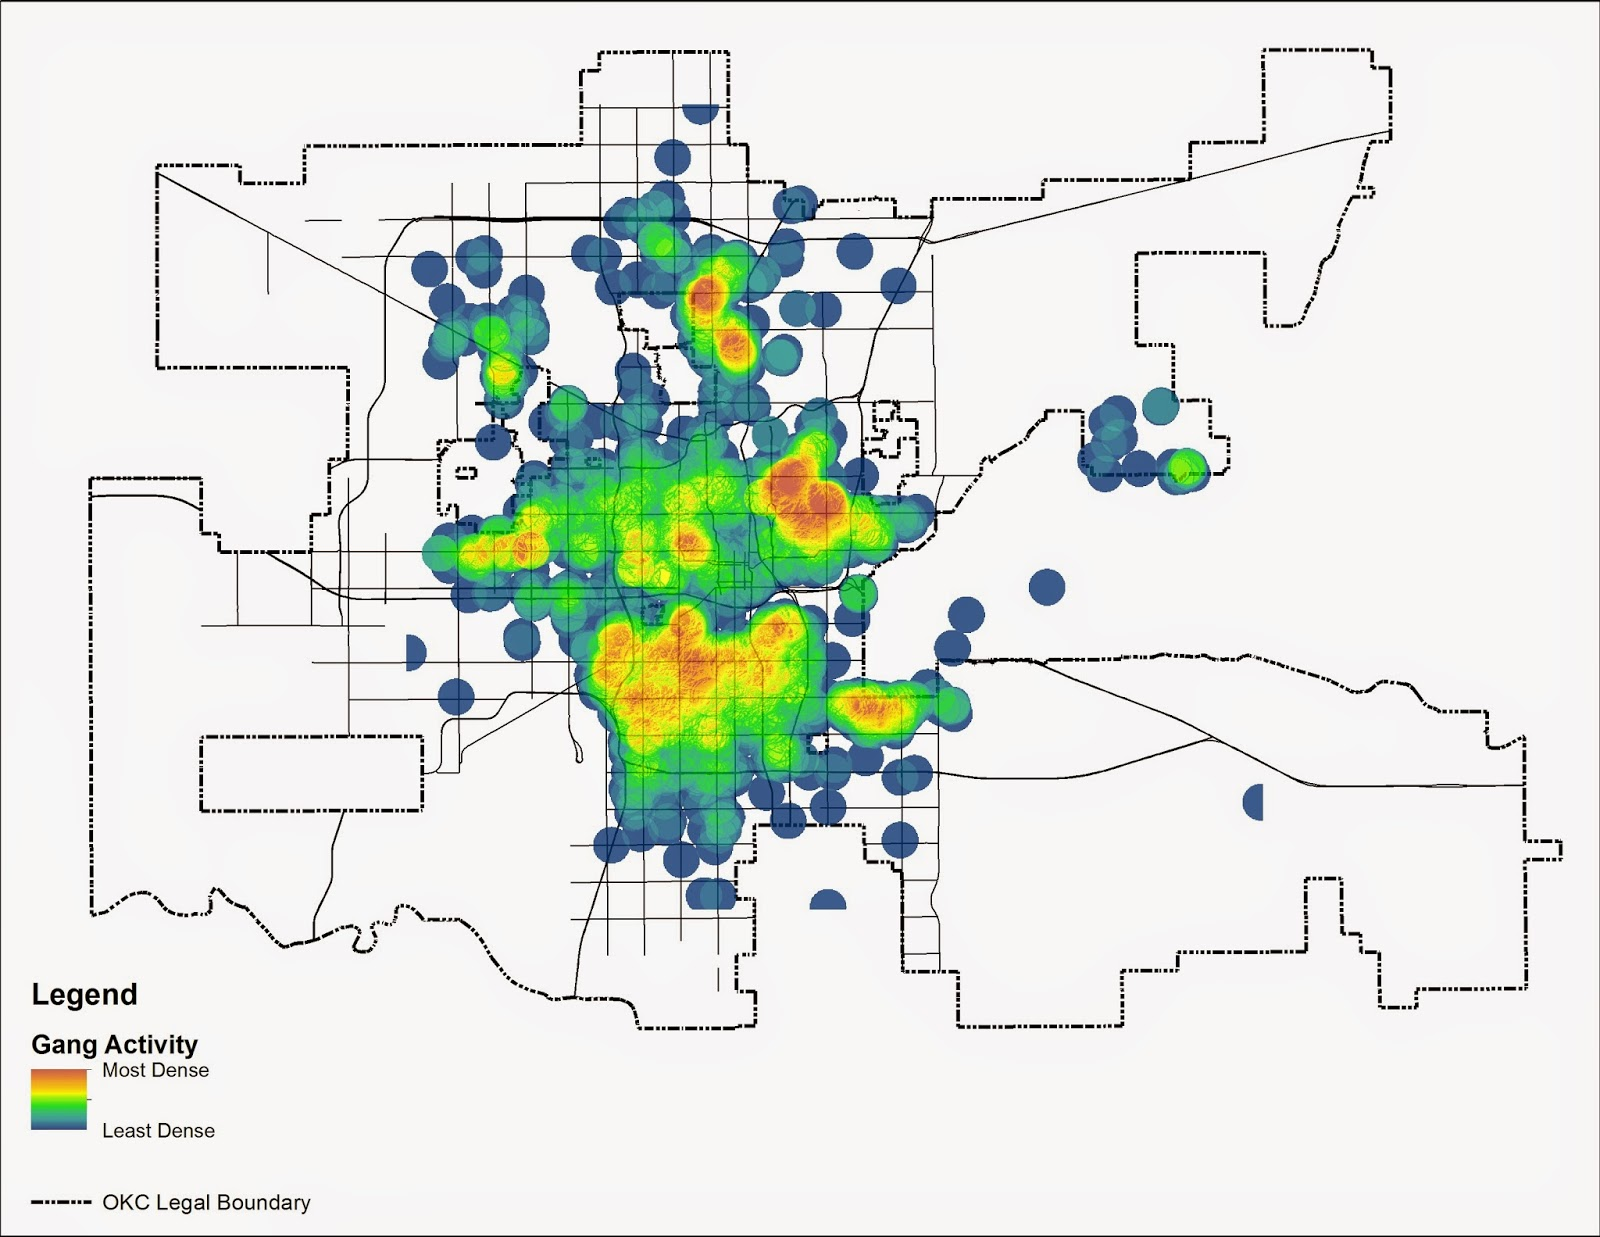 Carless in okc where do the children play gang violence in okc heat map showing where gang violence occurs gumiabroncs Image collections